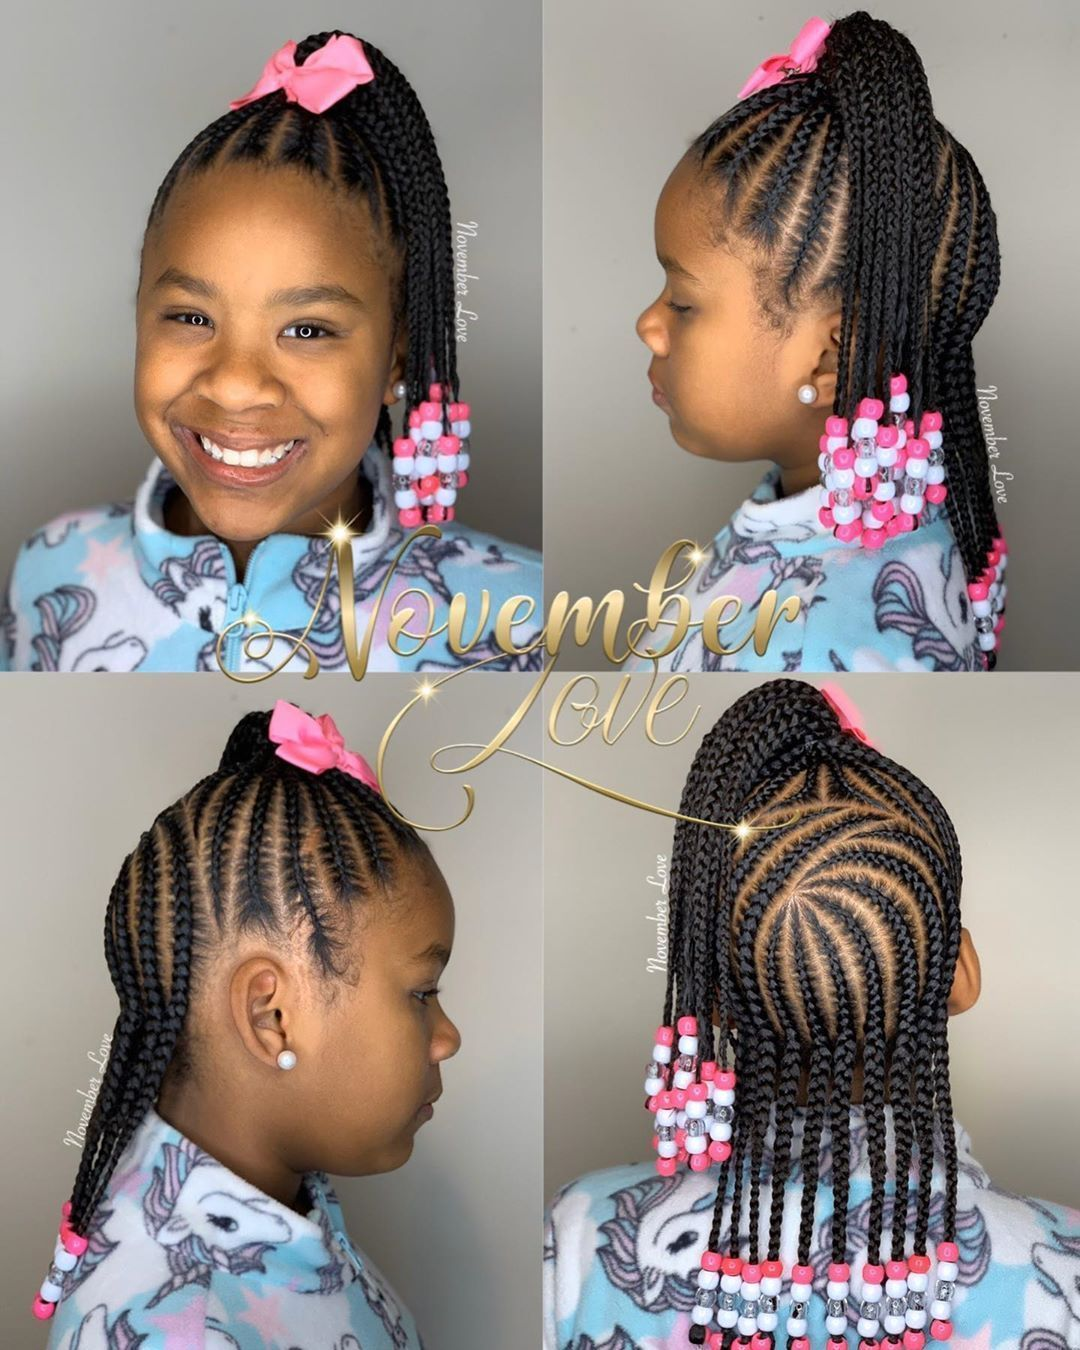 Hairstyles Braid And Curls Braided Hairstyles For 13 Year Olds Braided Hairstyles Quick Black Kids Hairstyles Kids Hairstyles Girls Kids Braided Hairstyles